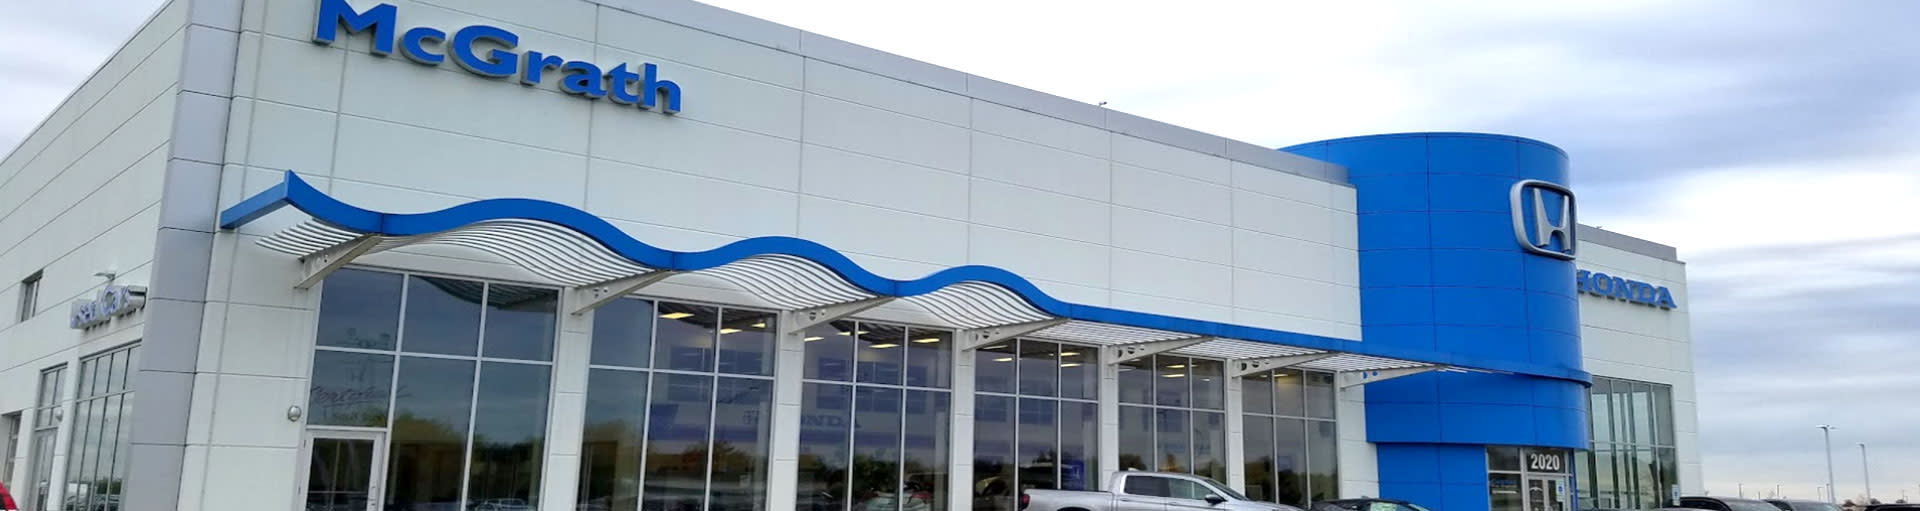 McGrath HONDA Elgin